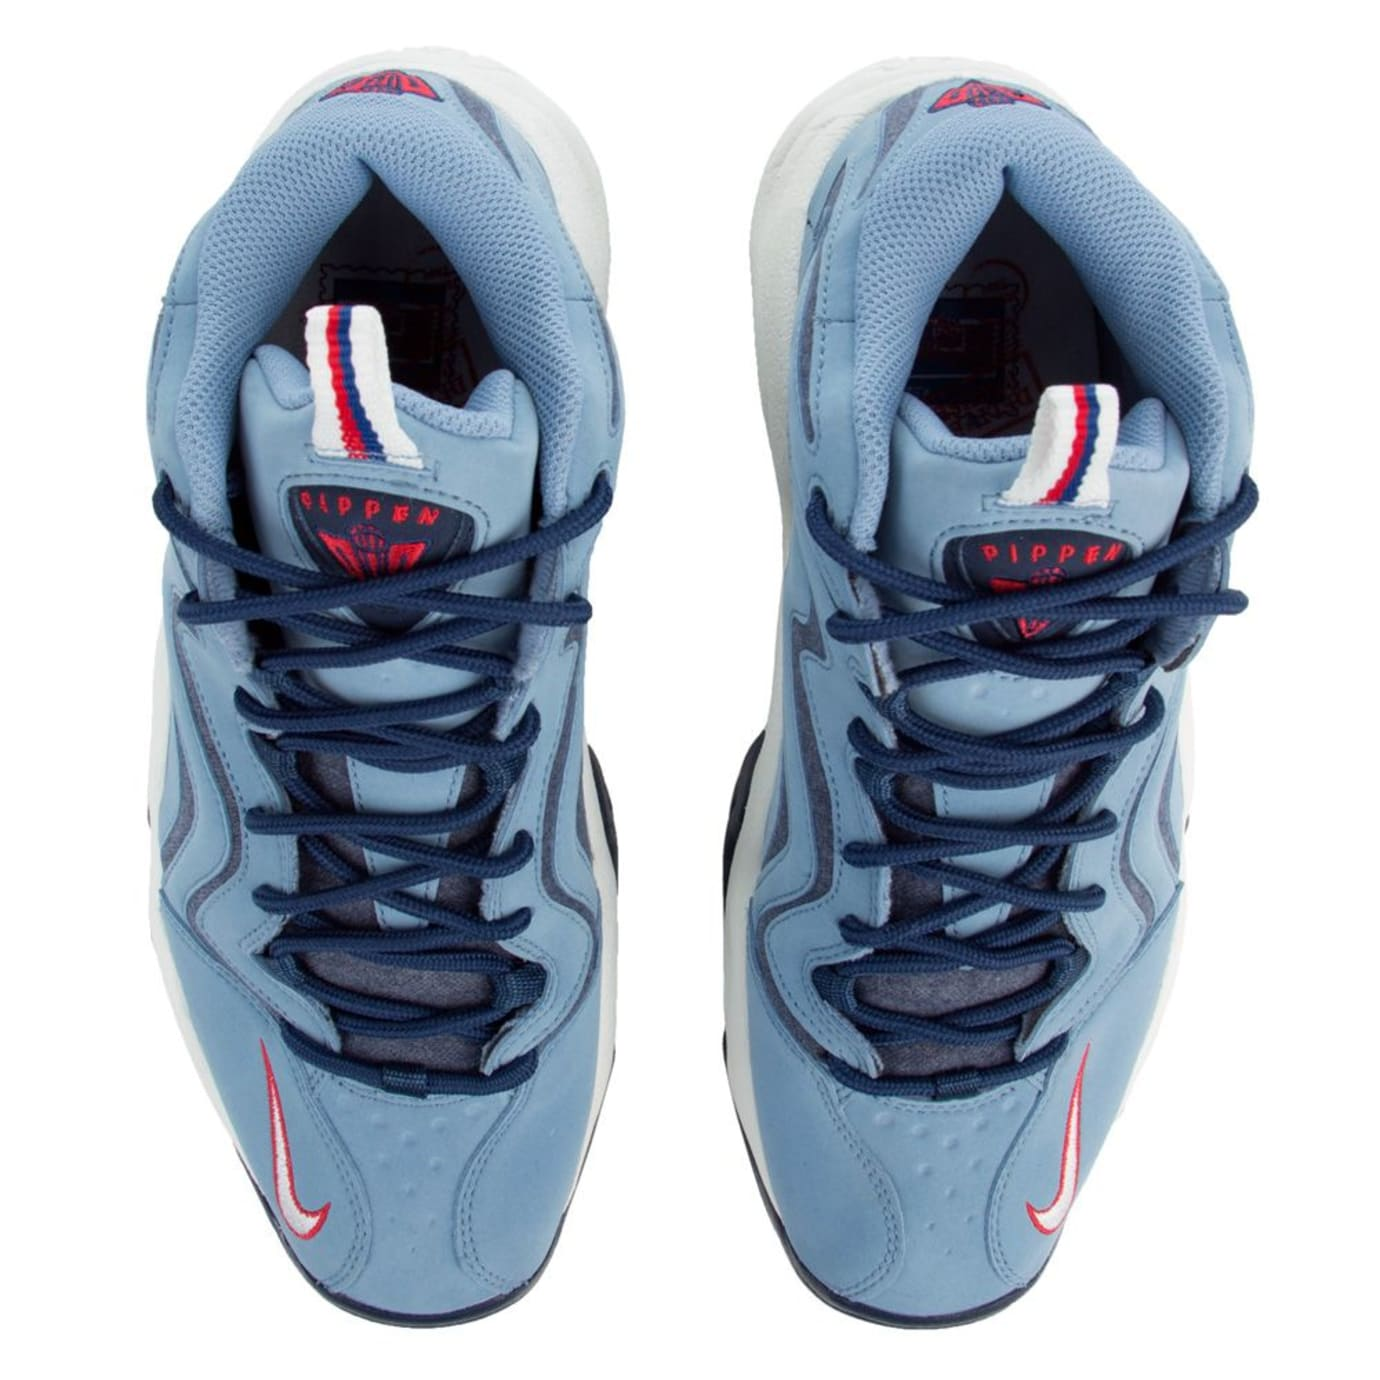 Nike Air Pippen Work Blue Chicago Flag Release Date 325001-403 Top 44442216f